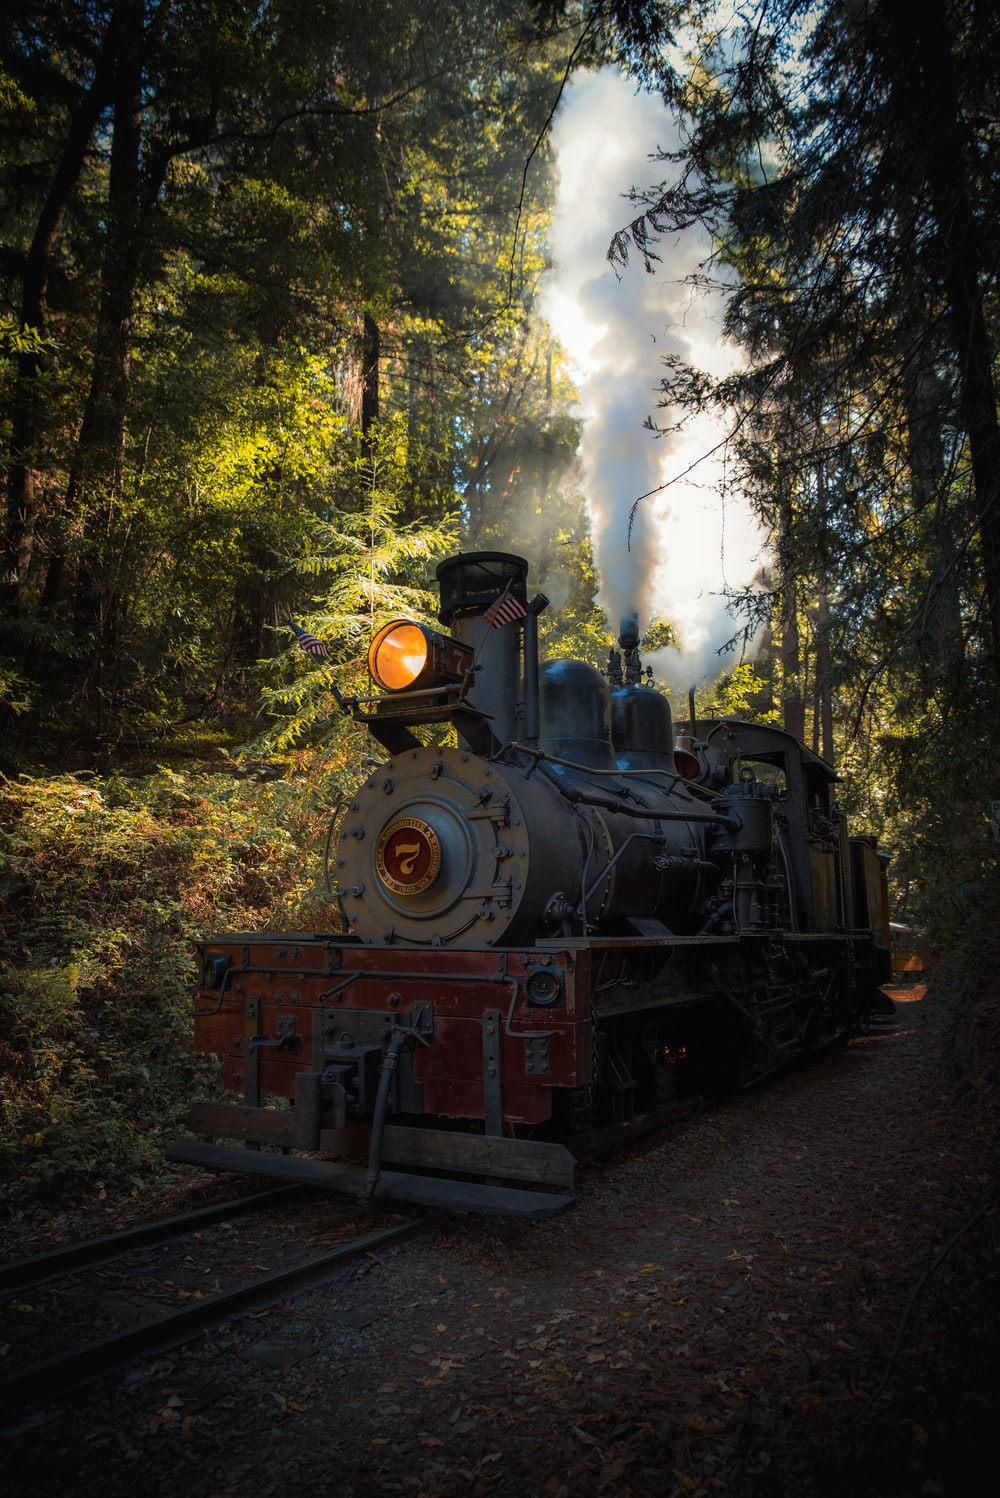 Steam locomotive surrounded by forest trees during daytime